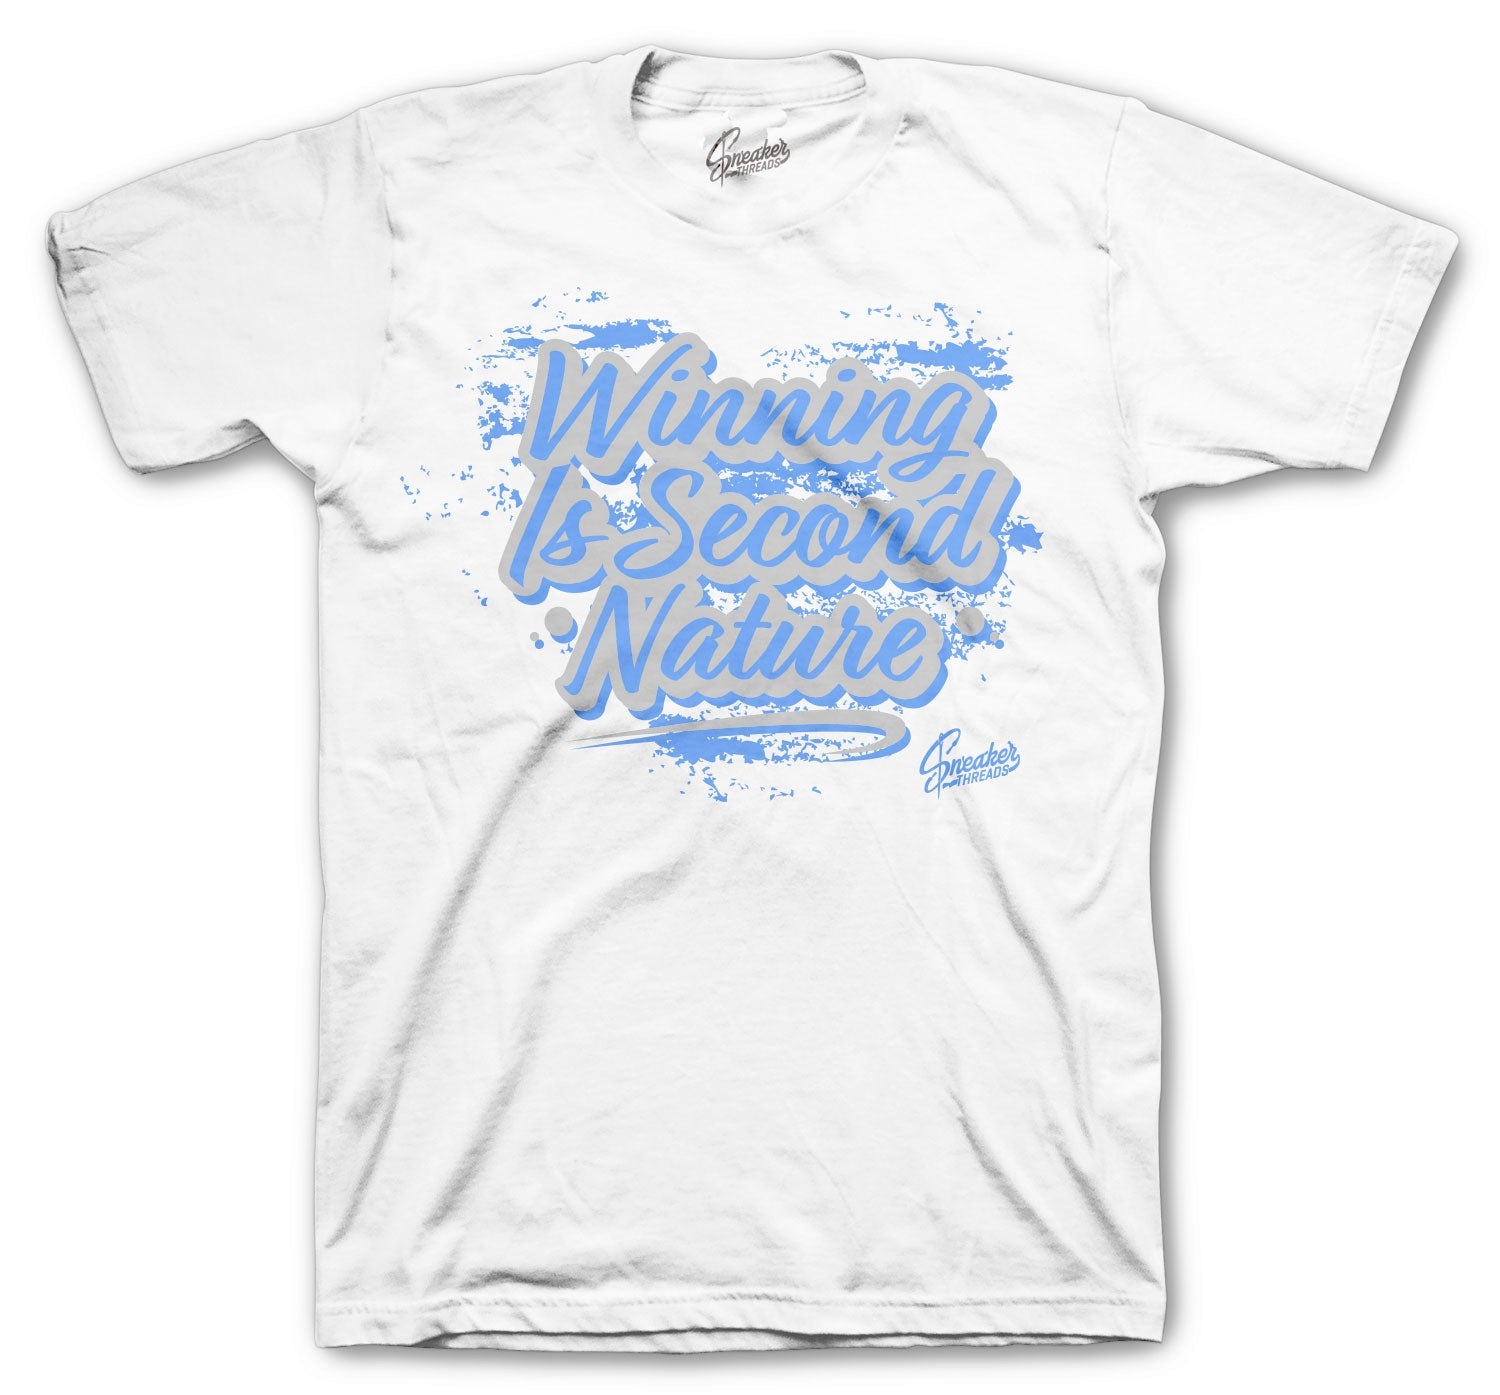 Jordan 1 Hyper Royal Shirt - Second Nature - White